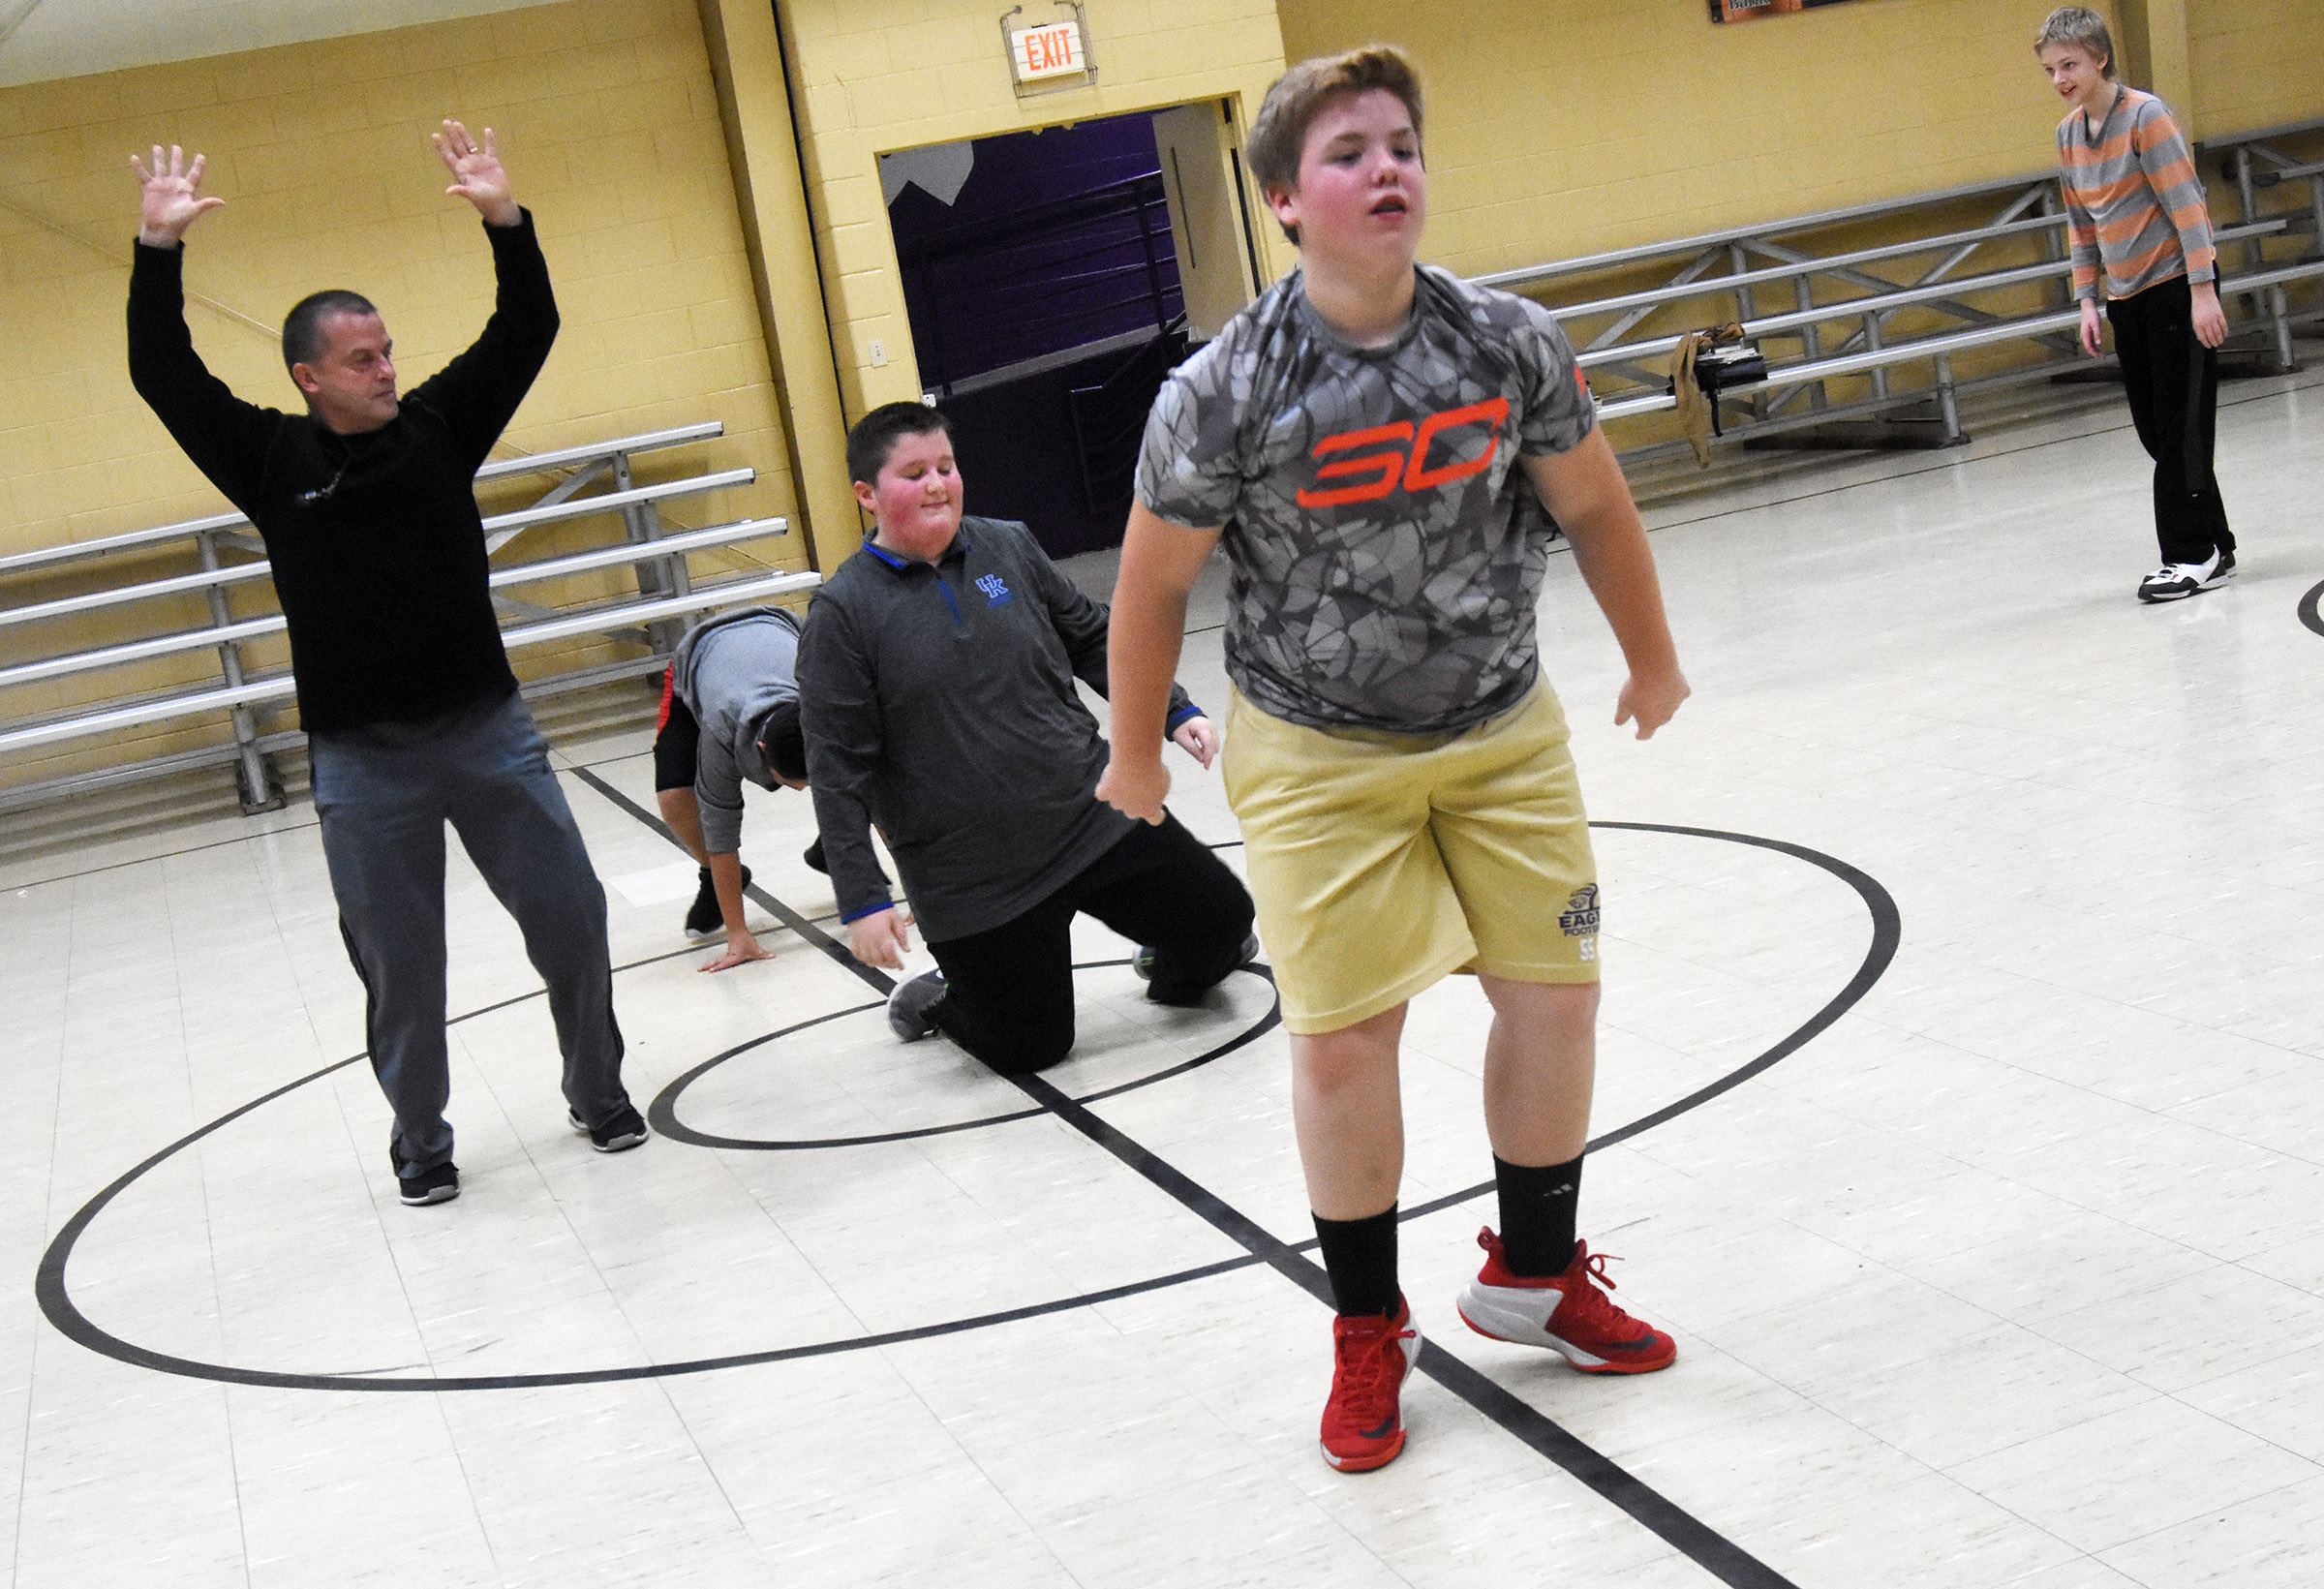 CMS substitute teacher Lynn Kearney leads students in a warmup exercise. From left are sixth-graders Luke McDonald, Ryan Grubbs and Jacob Releford.